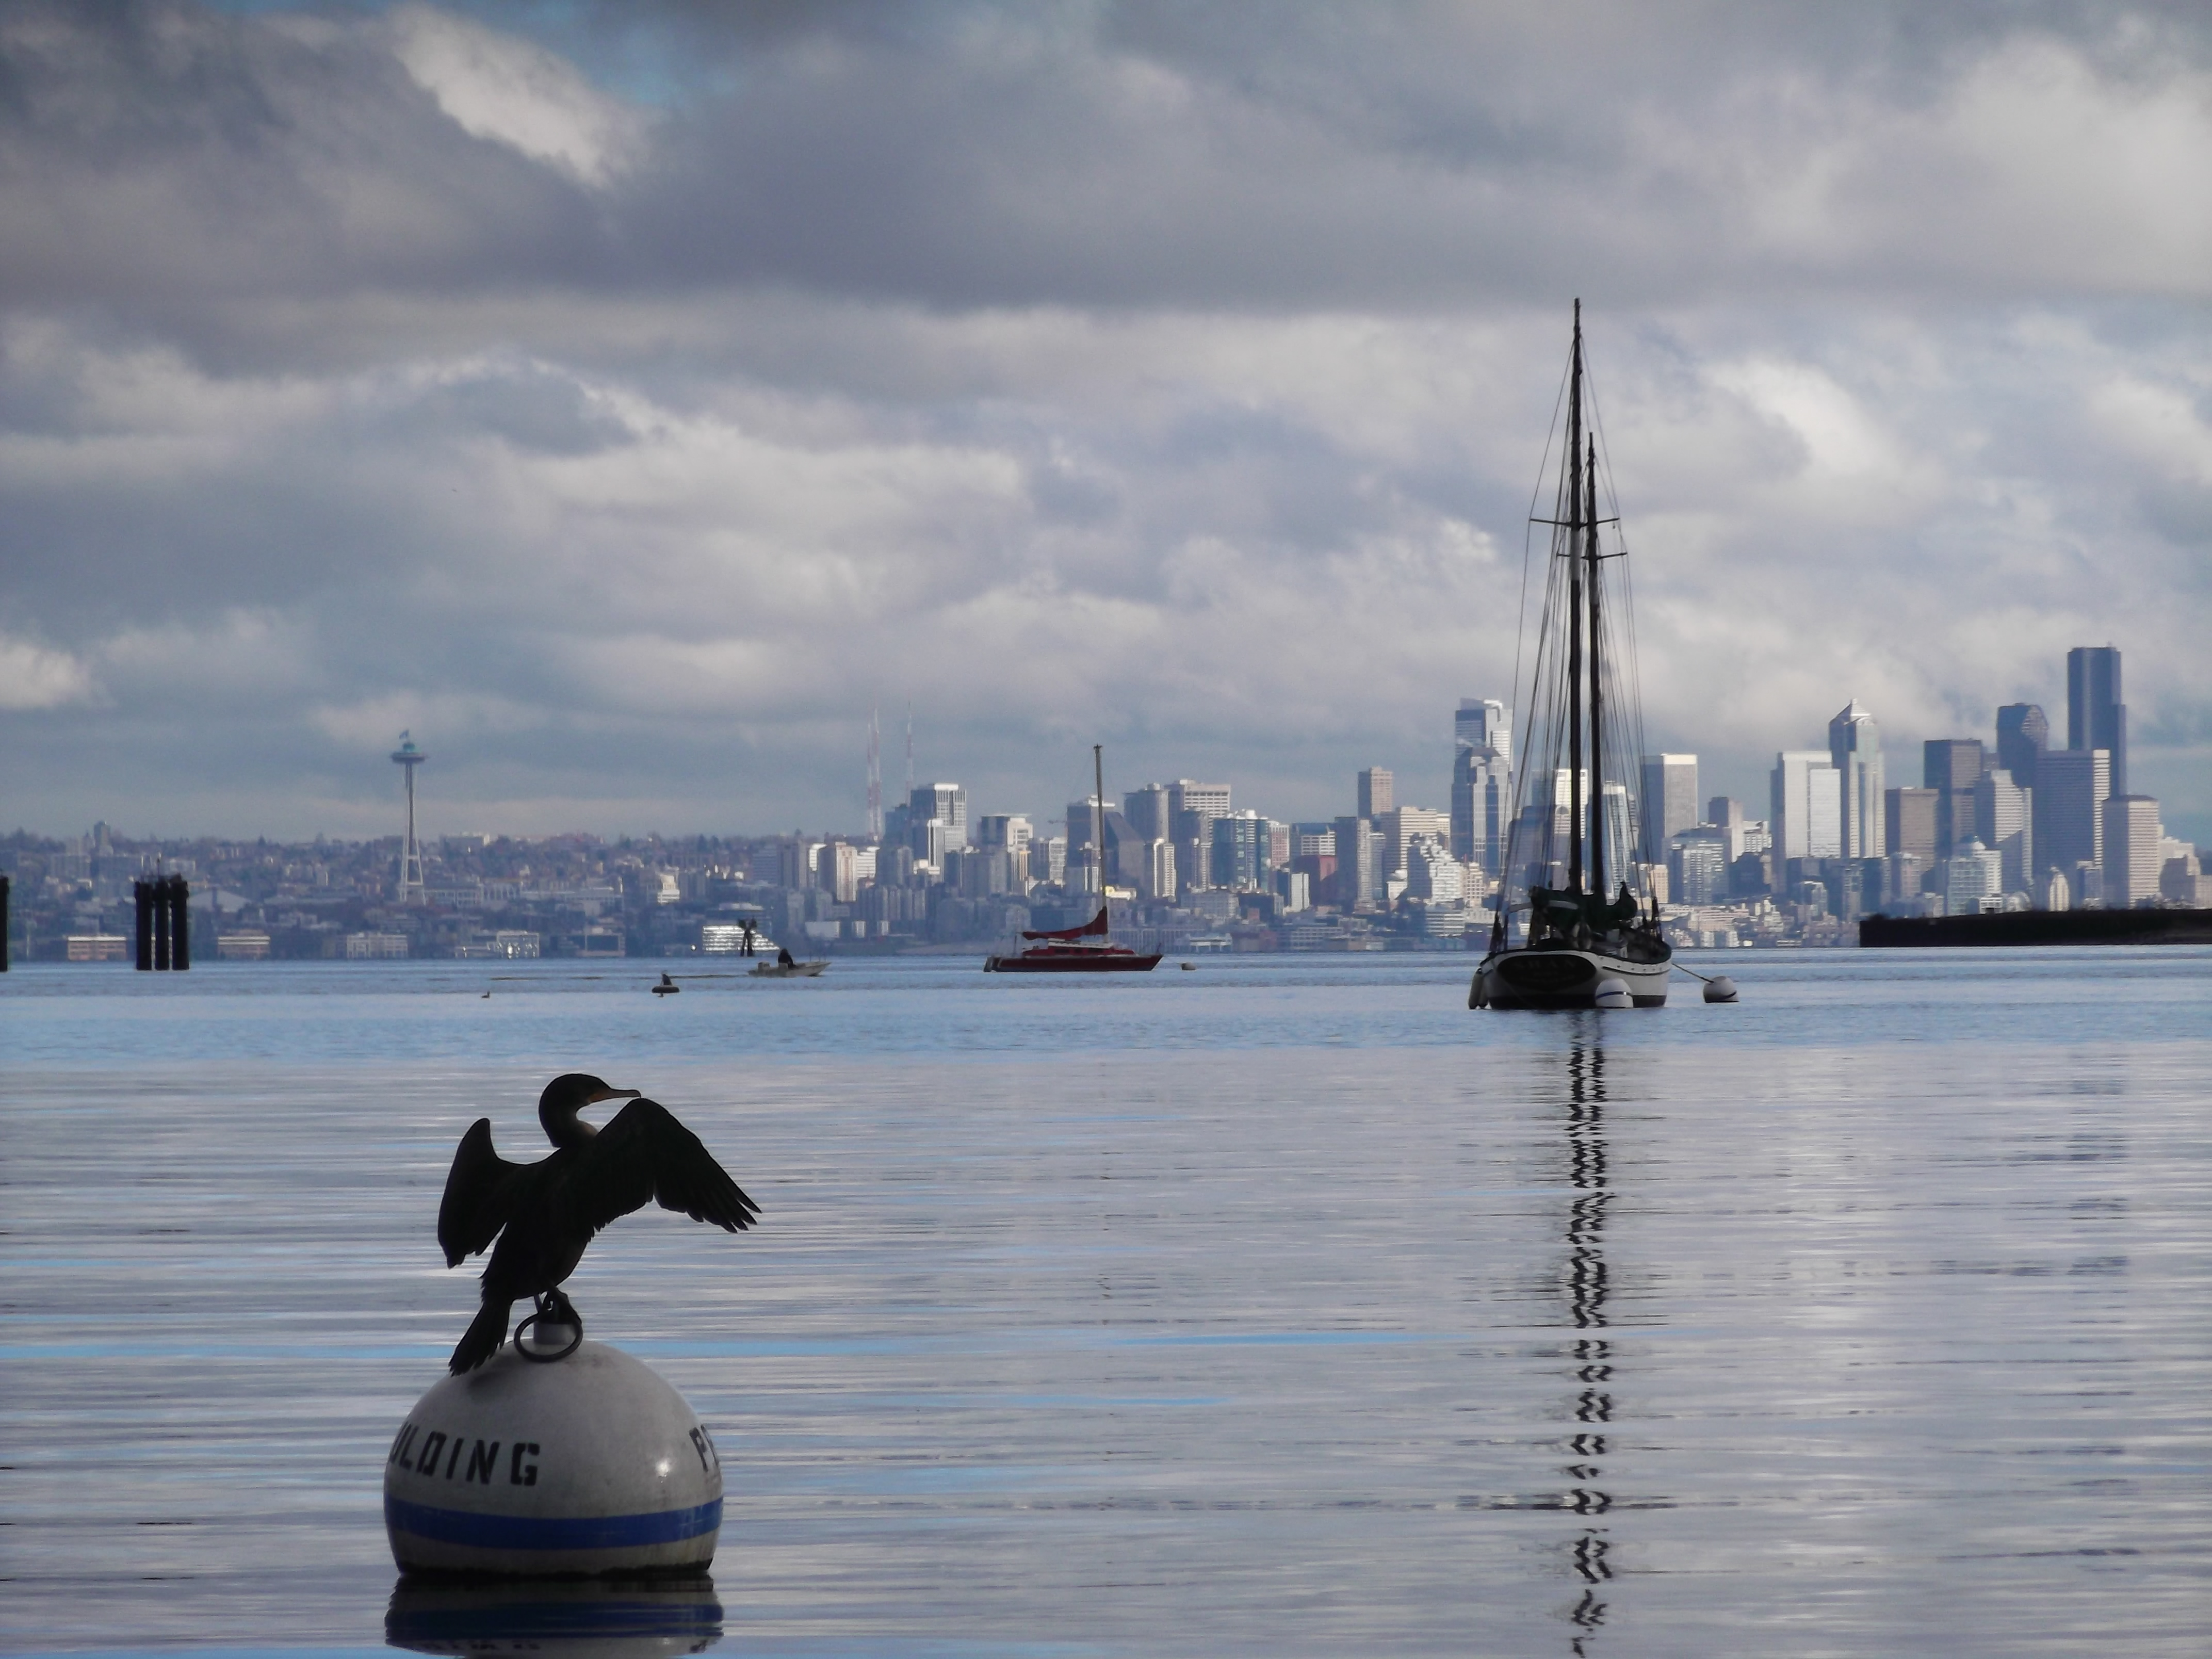 cormorant on buoy- picture for web page